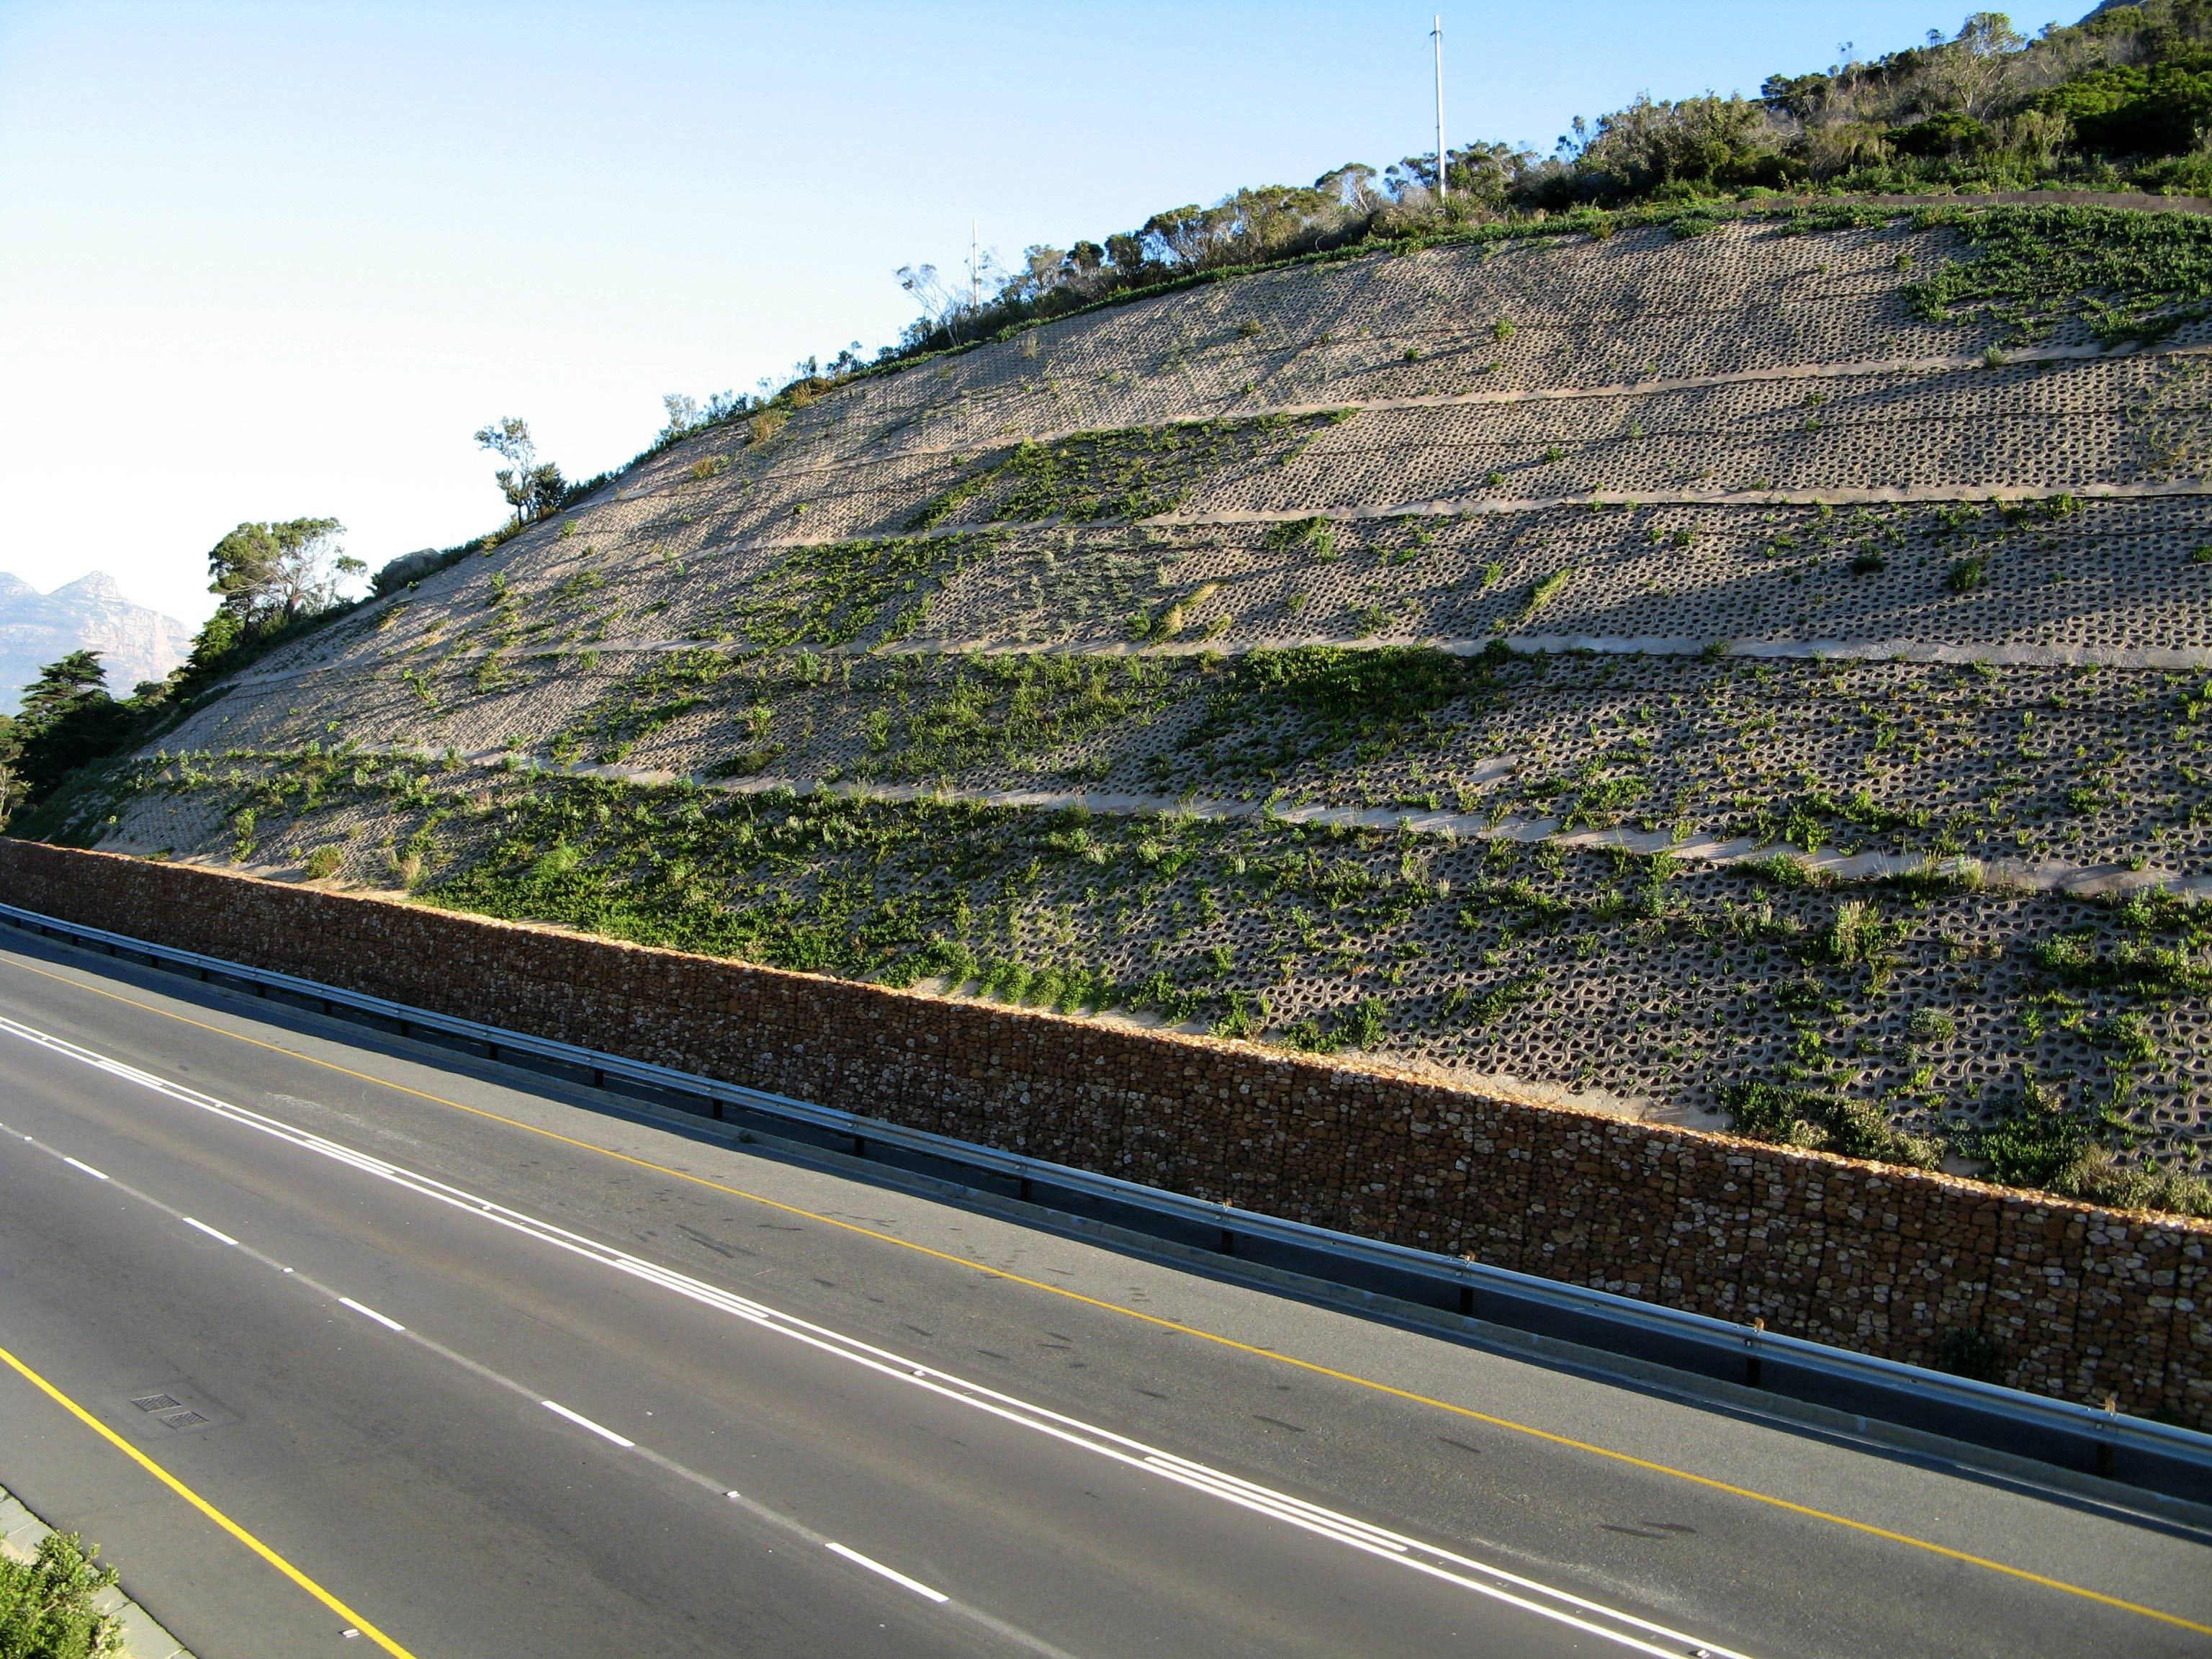 Vegetation takes hold on the Retaining Wall